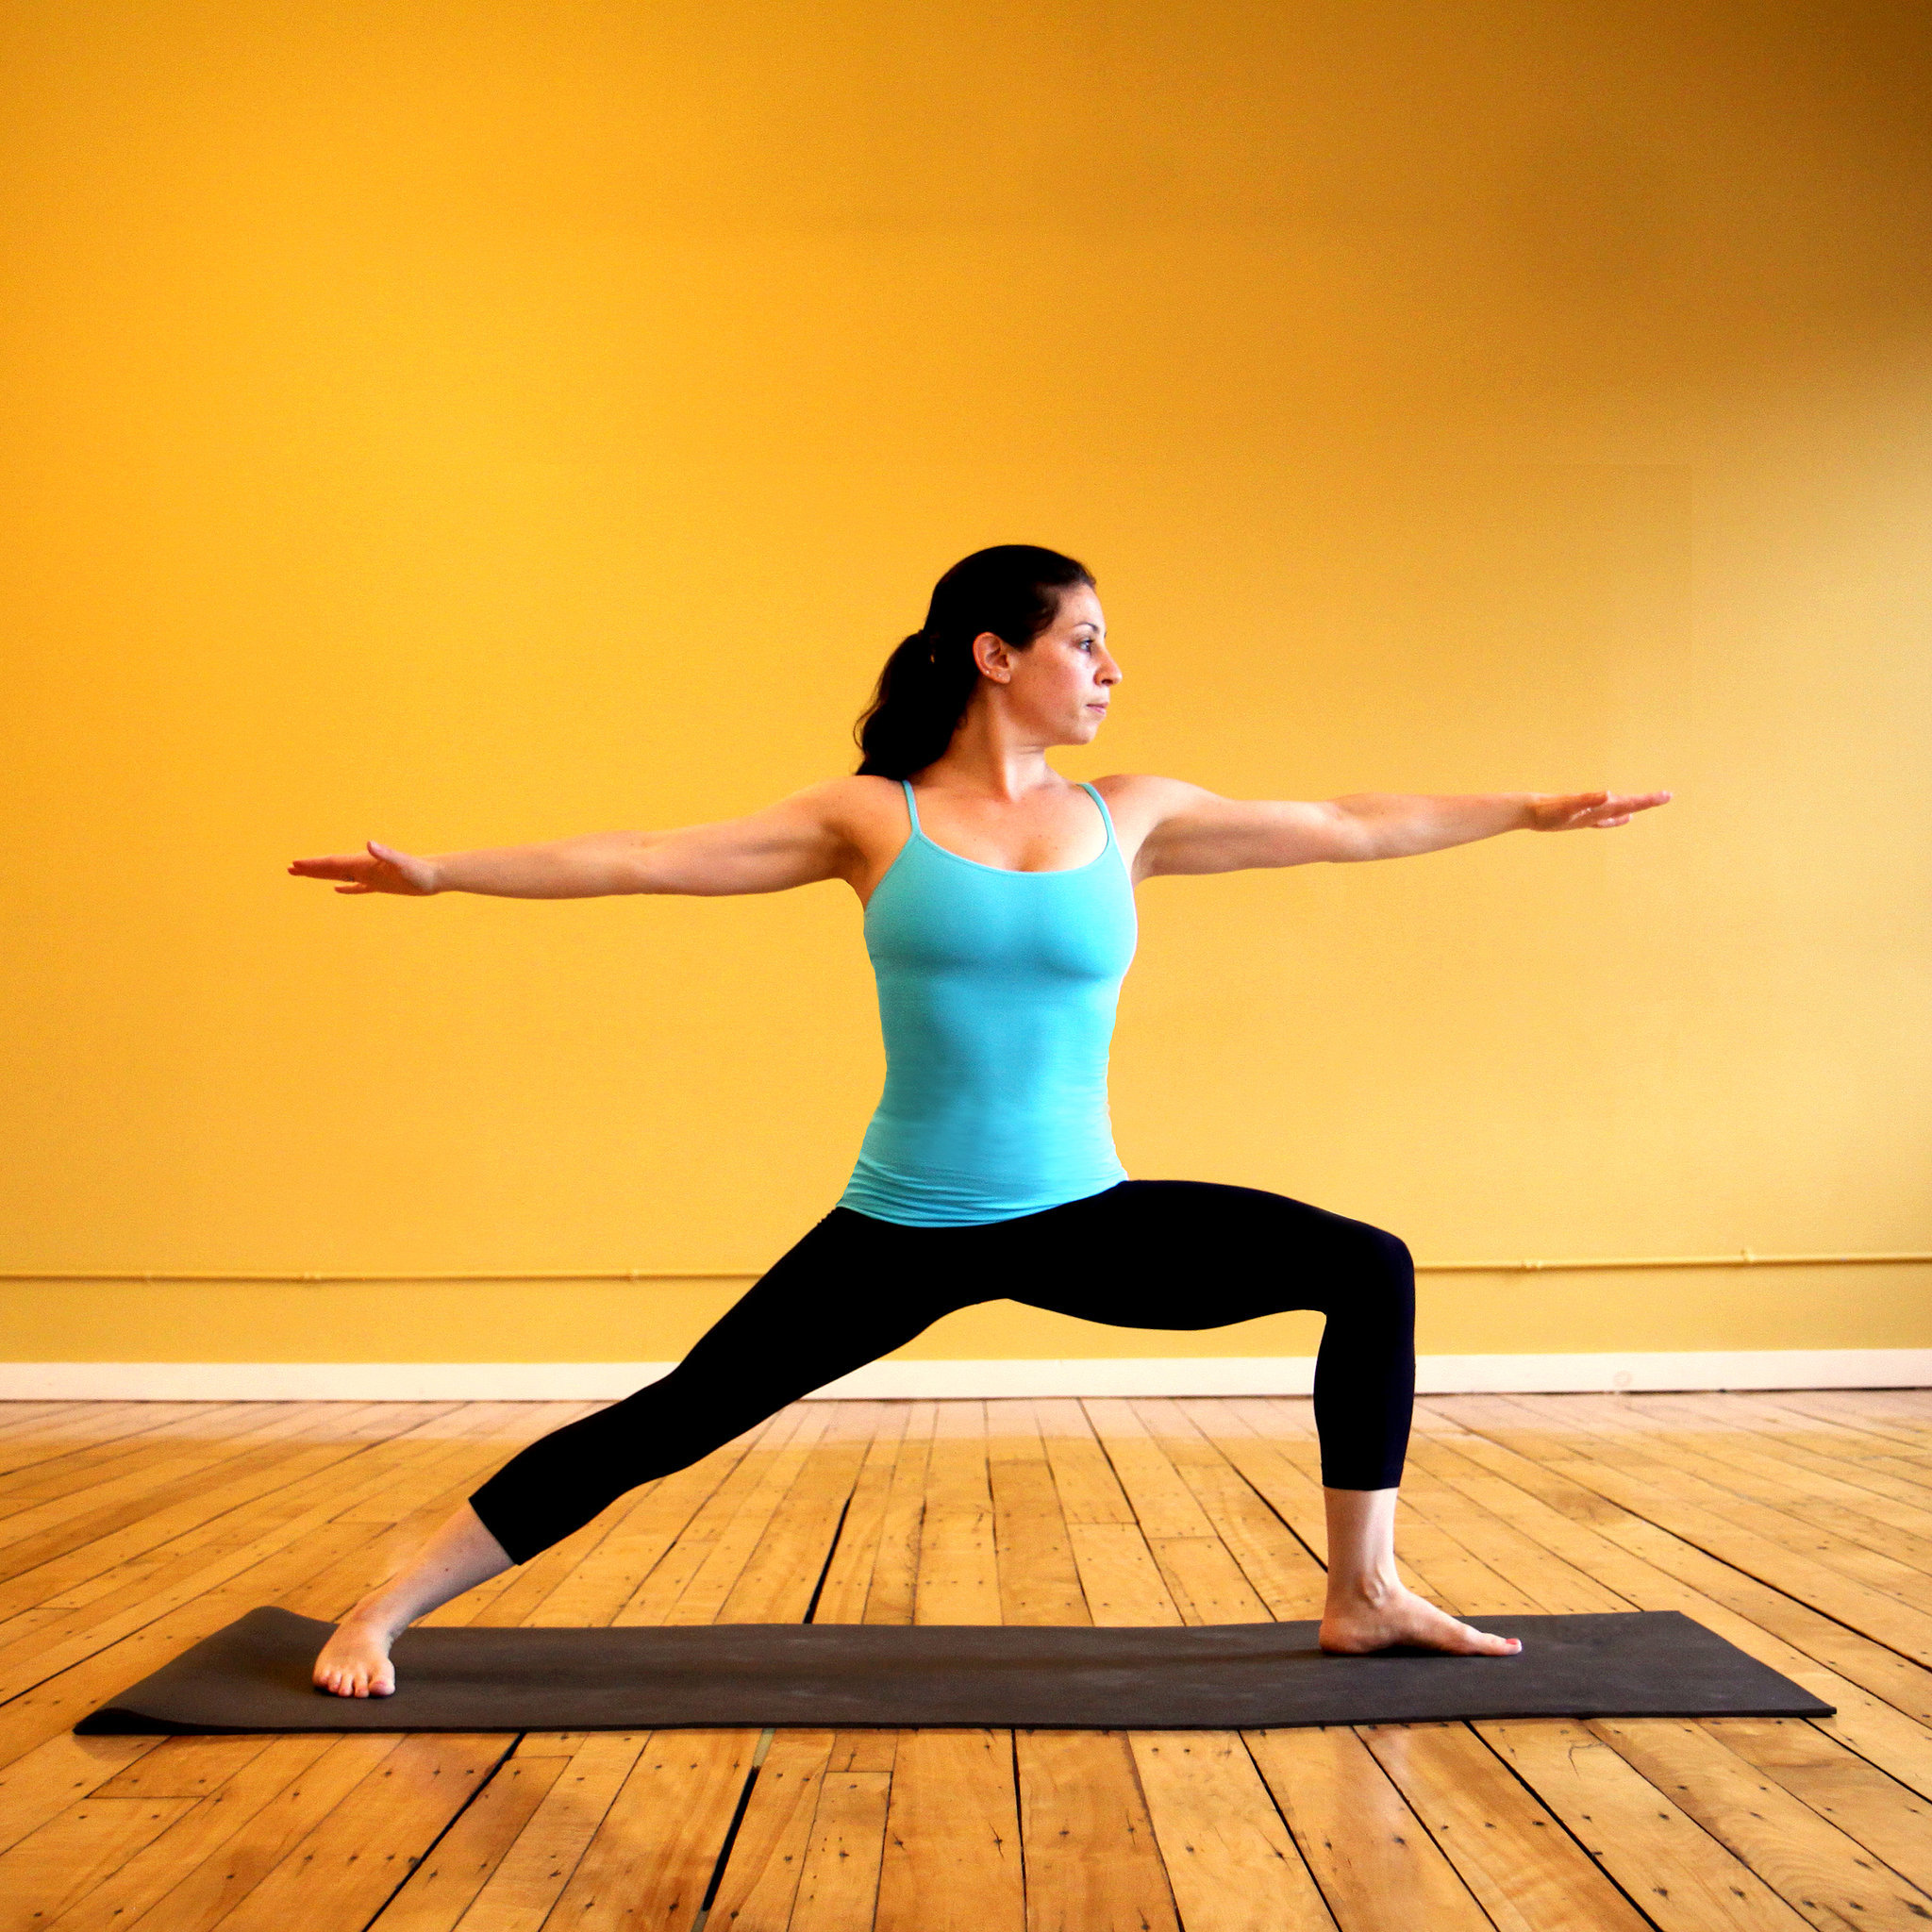 Yoga For Weight Loss | Private Space for Women